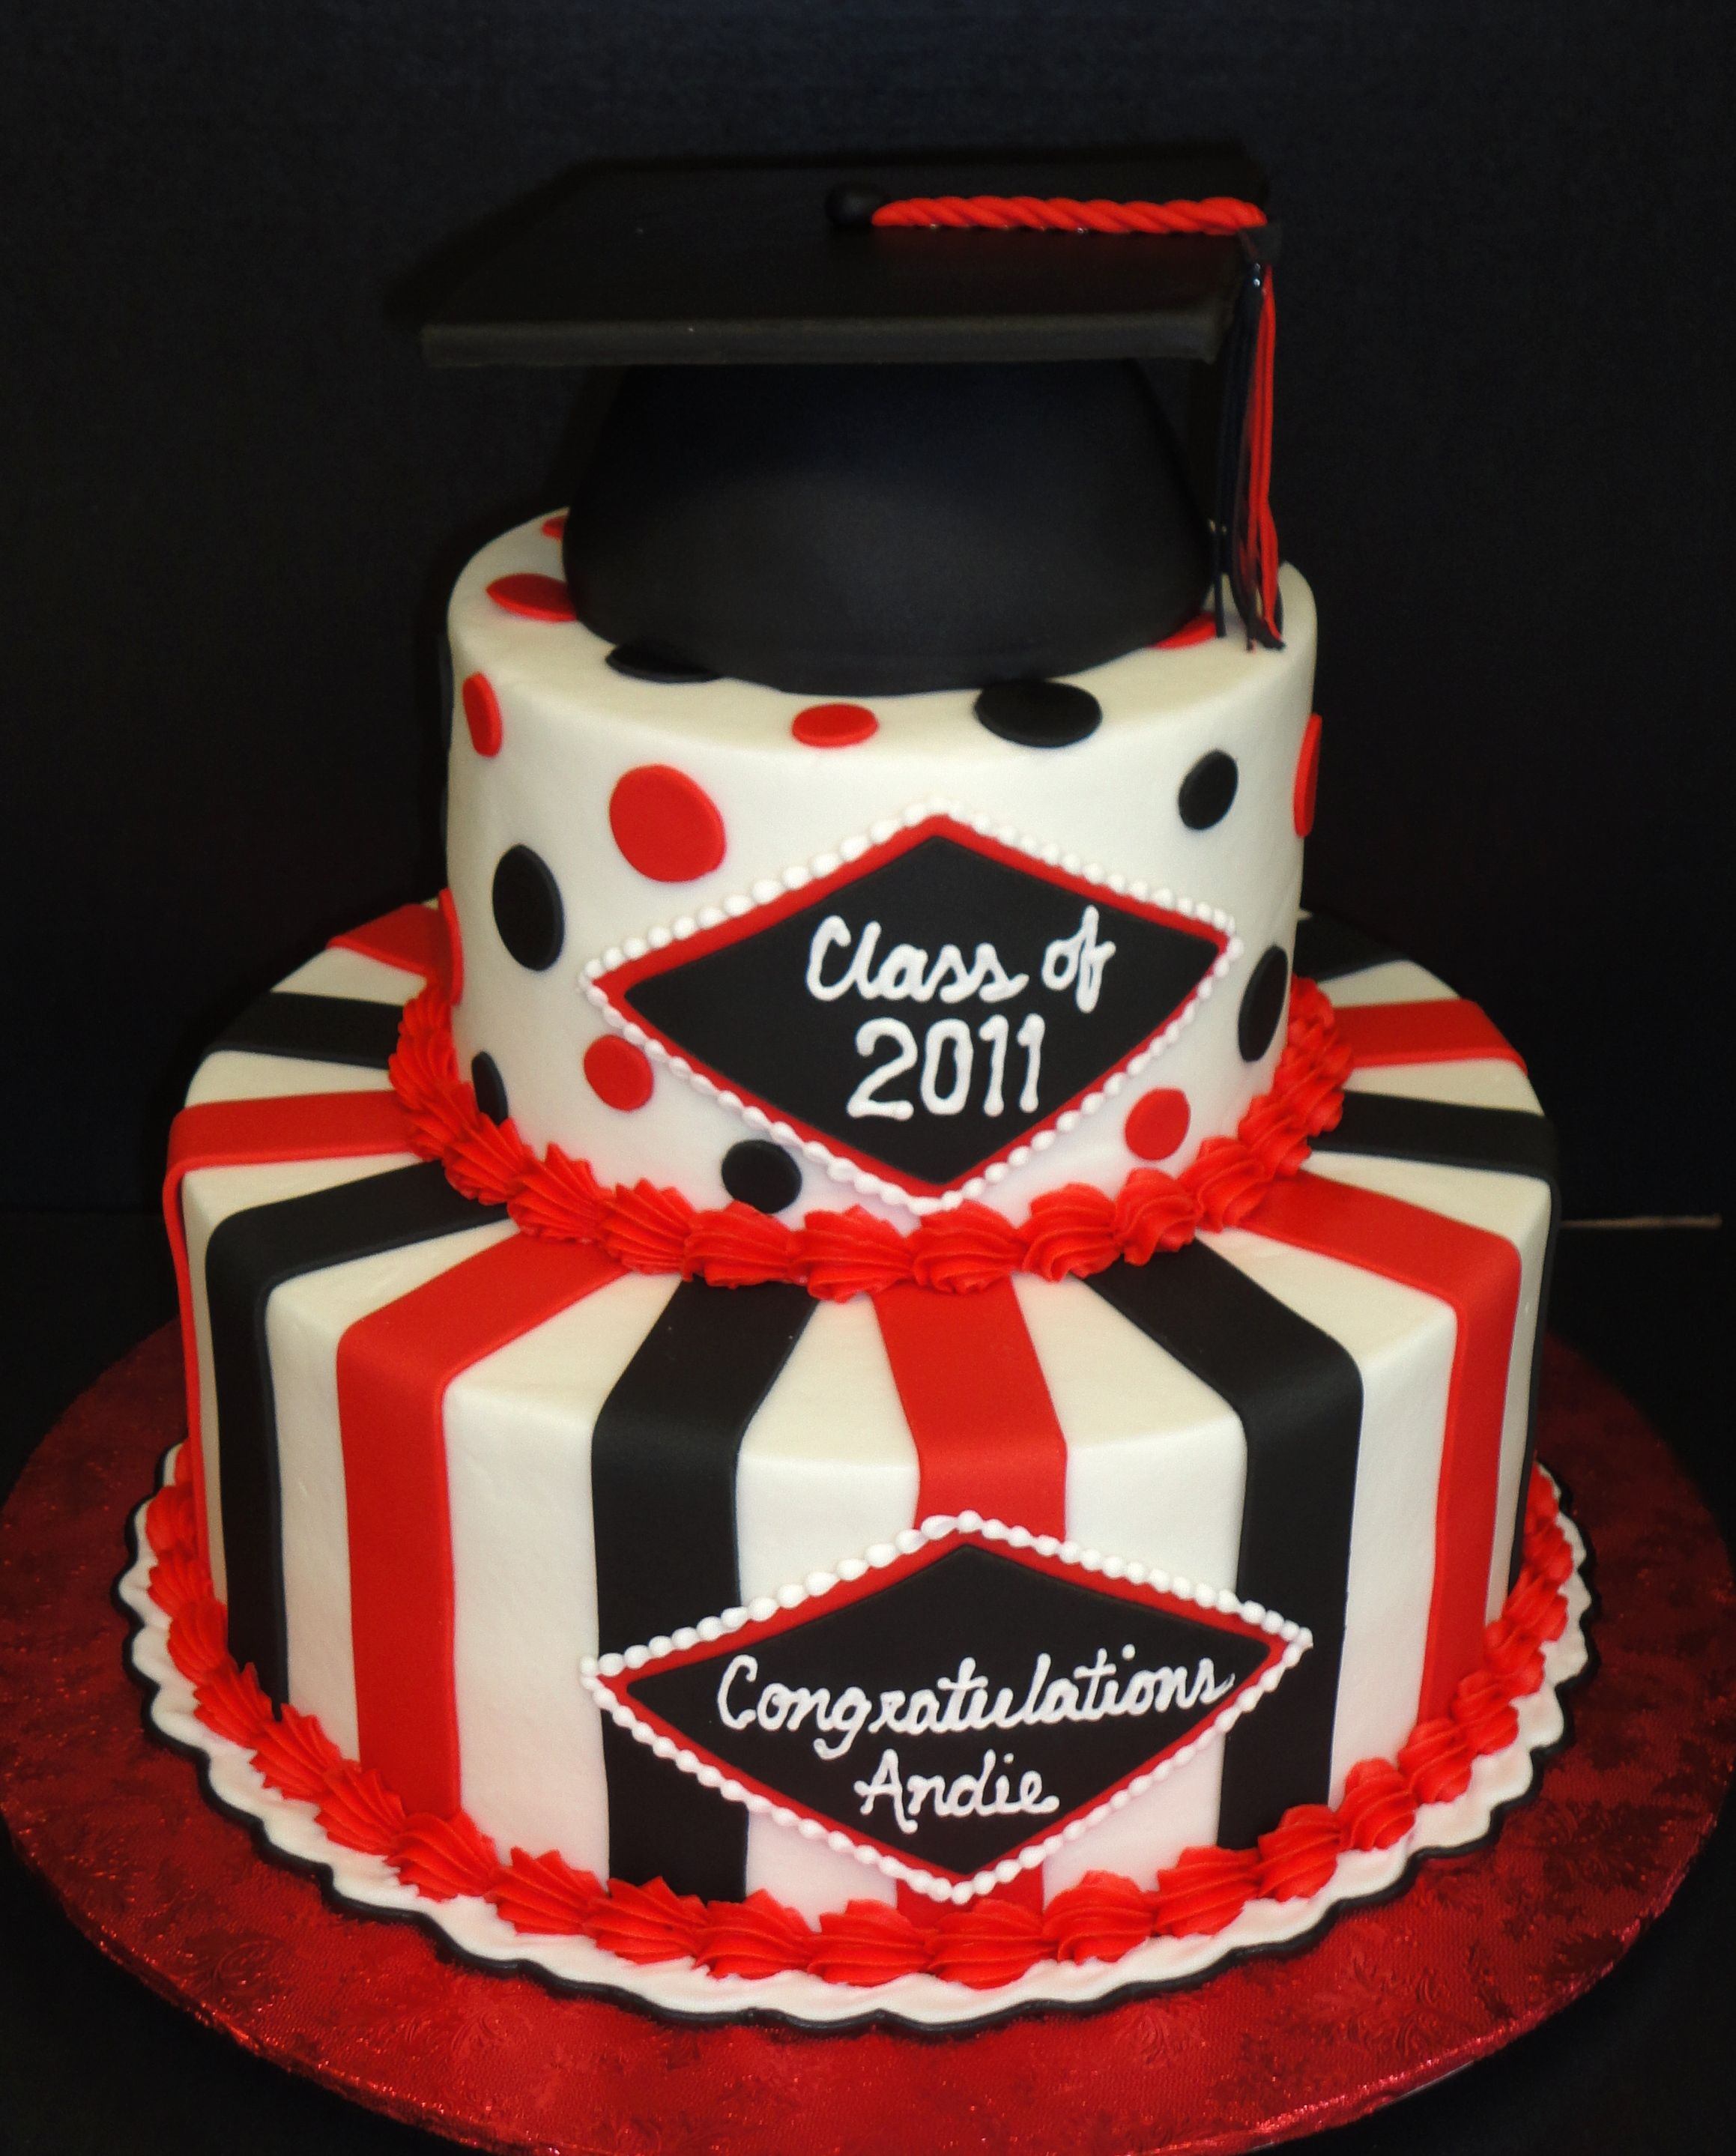 Cake Design Graduation : College Graduation Cakes on Pinterest Graduation Cake ...